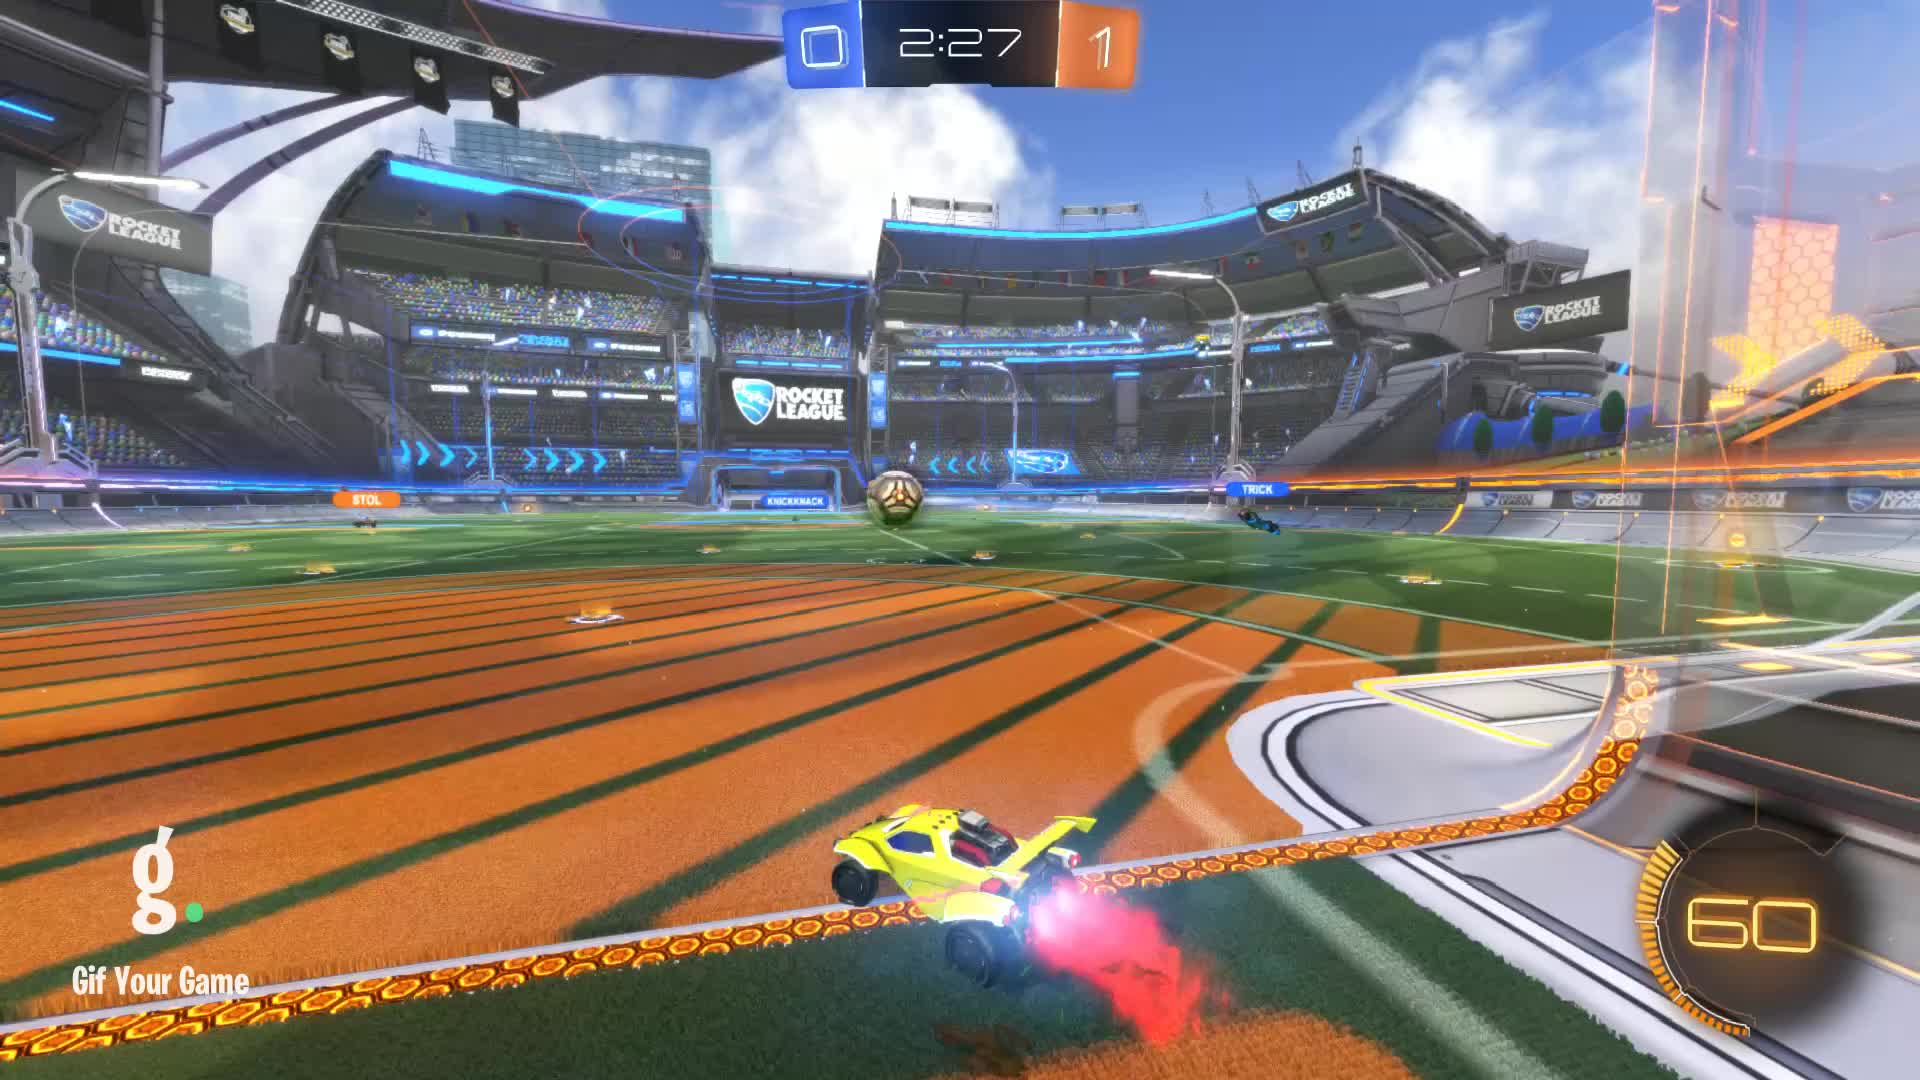 Gif Your Game, GifYourGame, Goal, Ransackers :3, Rocket League, RocketLeague, Goal 2: Ransackers :3 GIFs